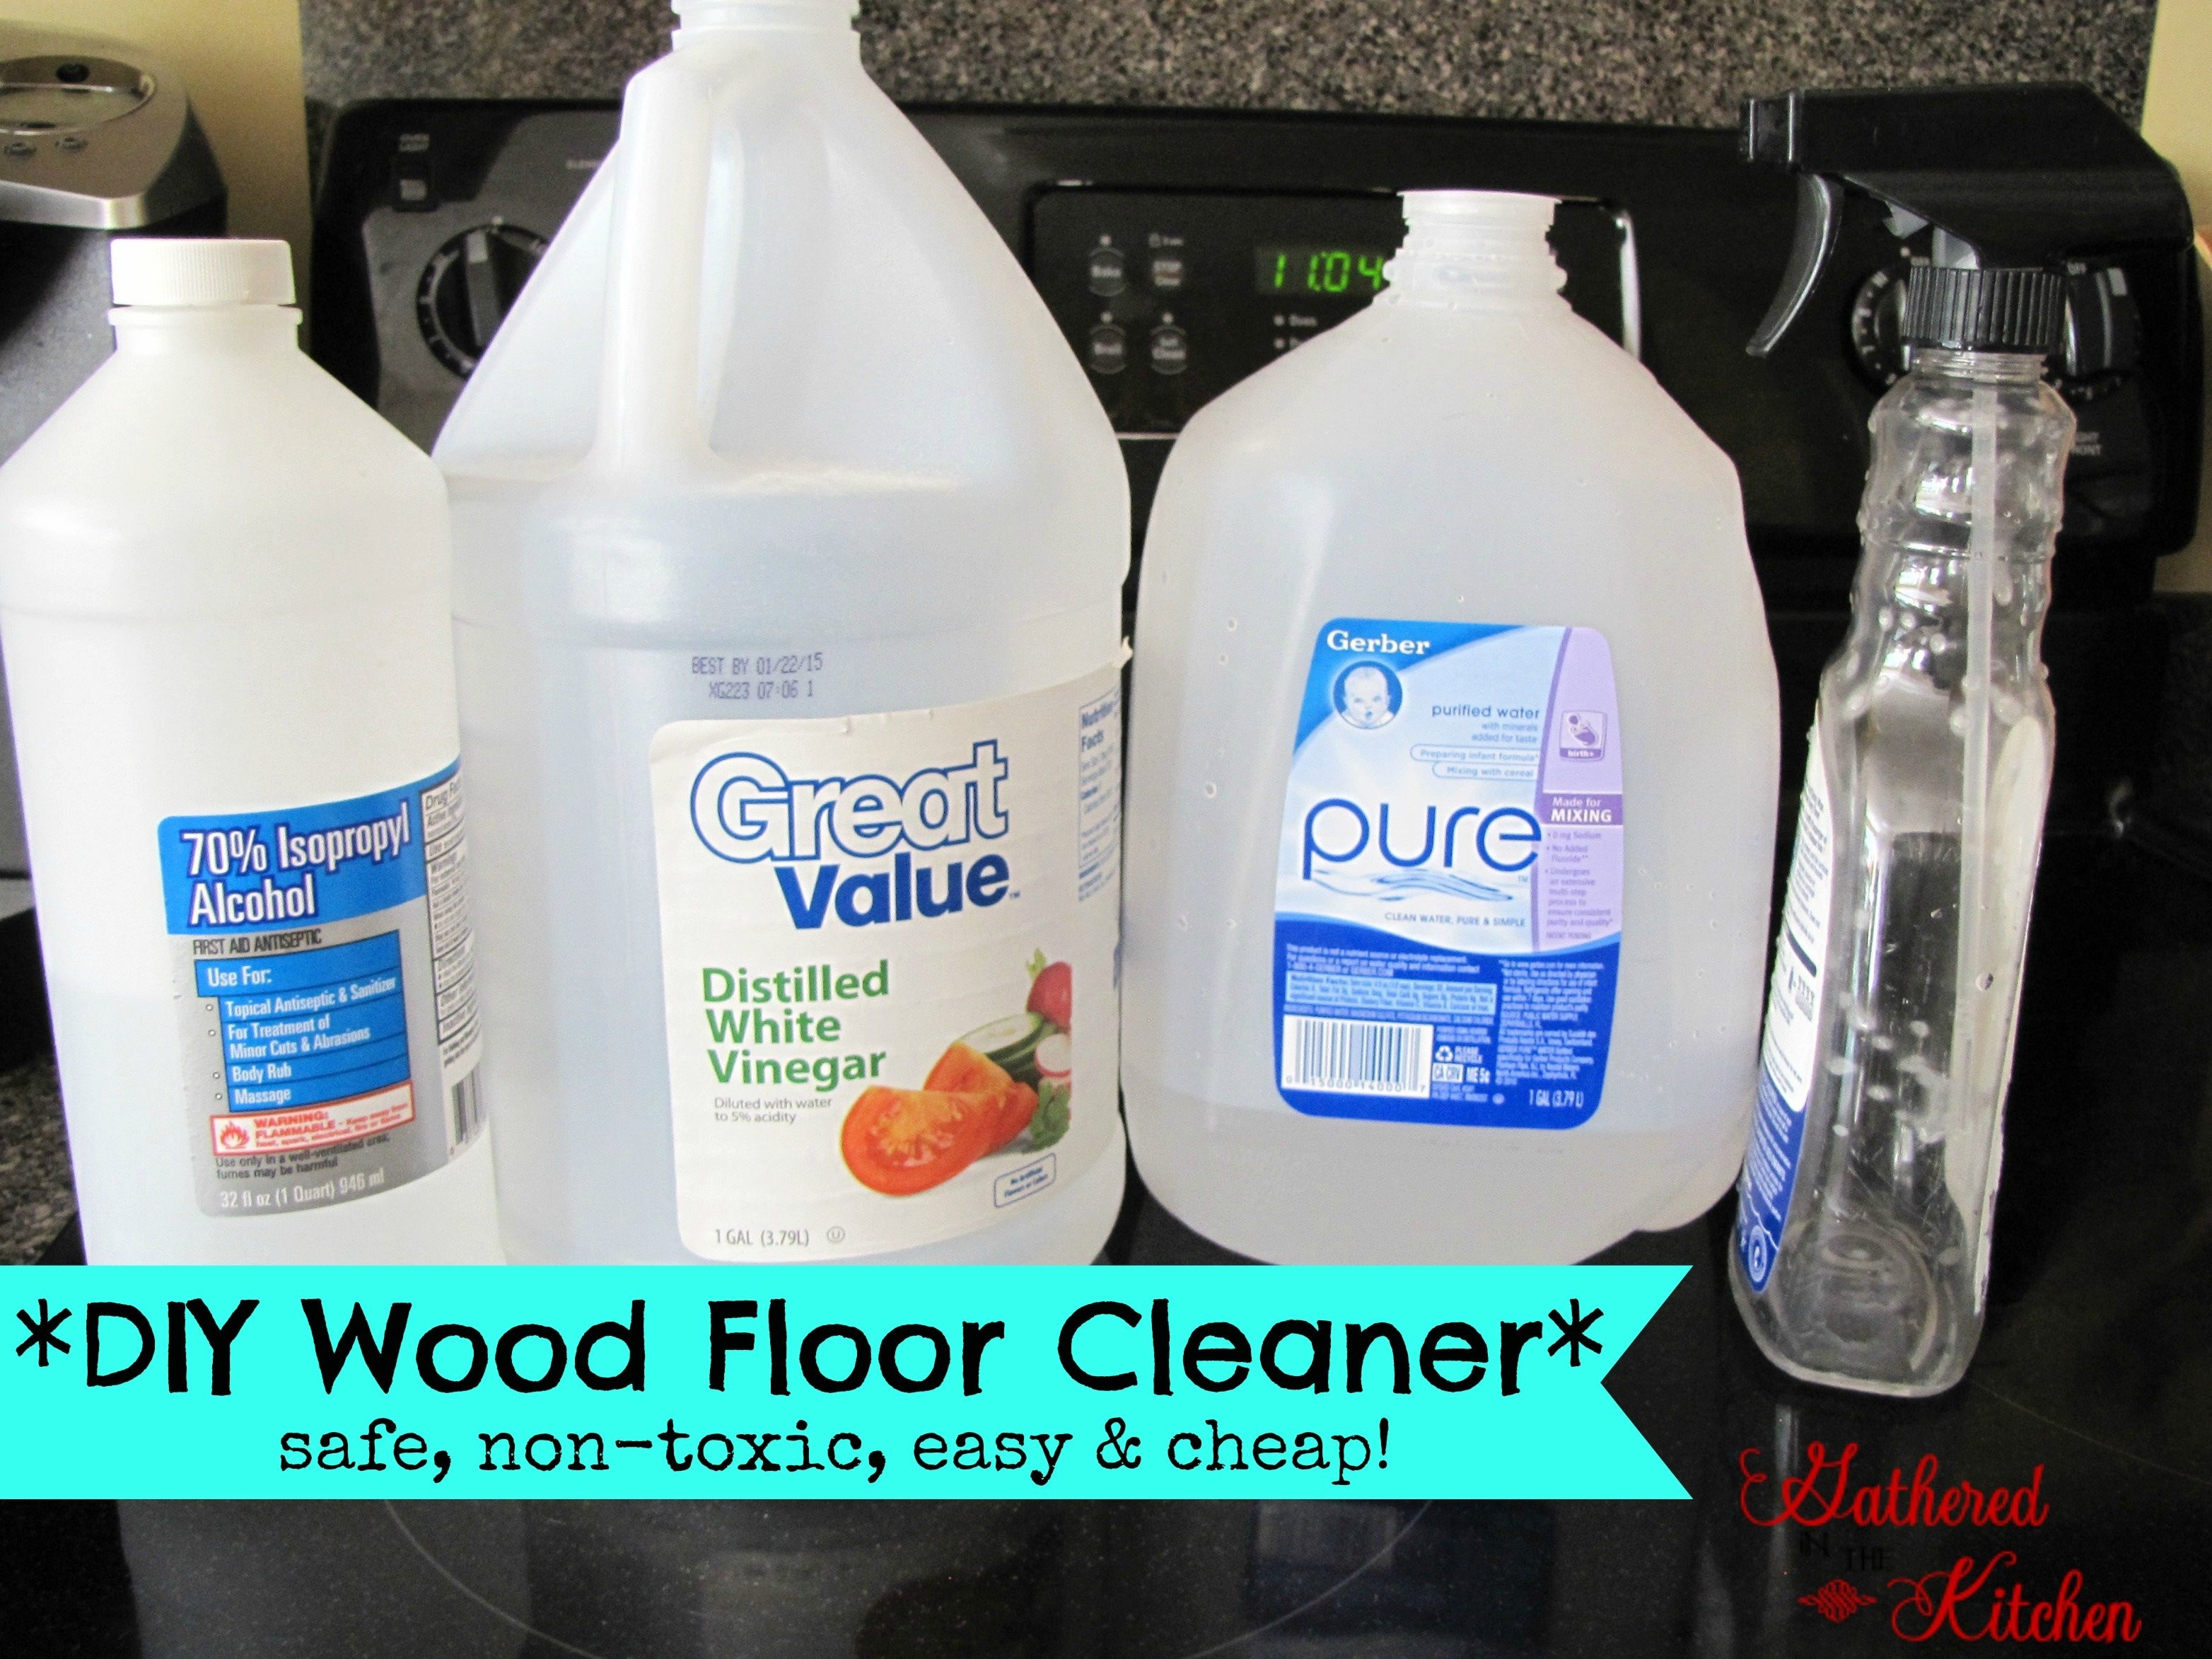 hardwood floor cleaner vinegar dawn of breathtaking clean wood floors with vinegar beautiful floors are with regard to breathtaking clean wood floor with vinegar washing laminate and water idea cleaning hardwood decoration in size